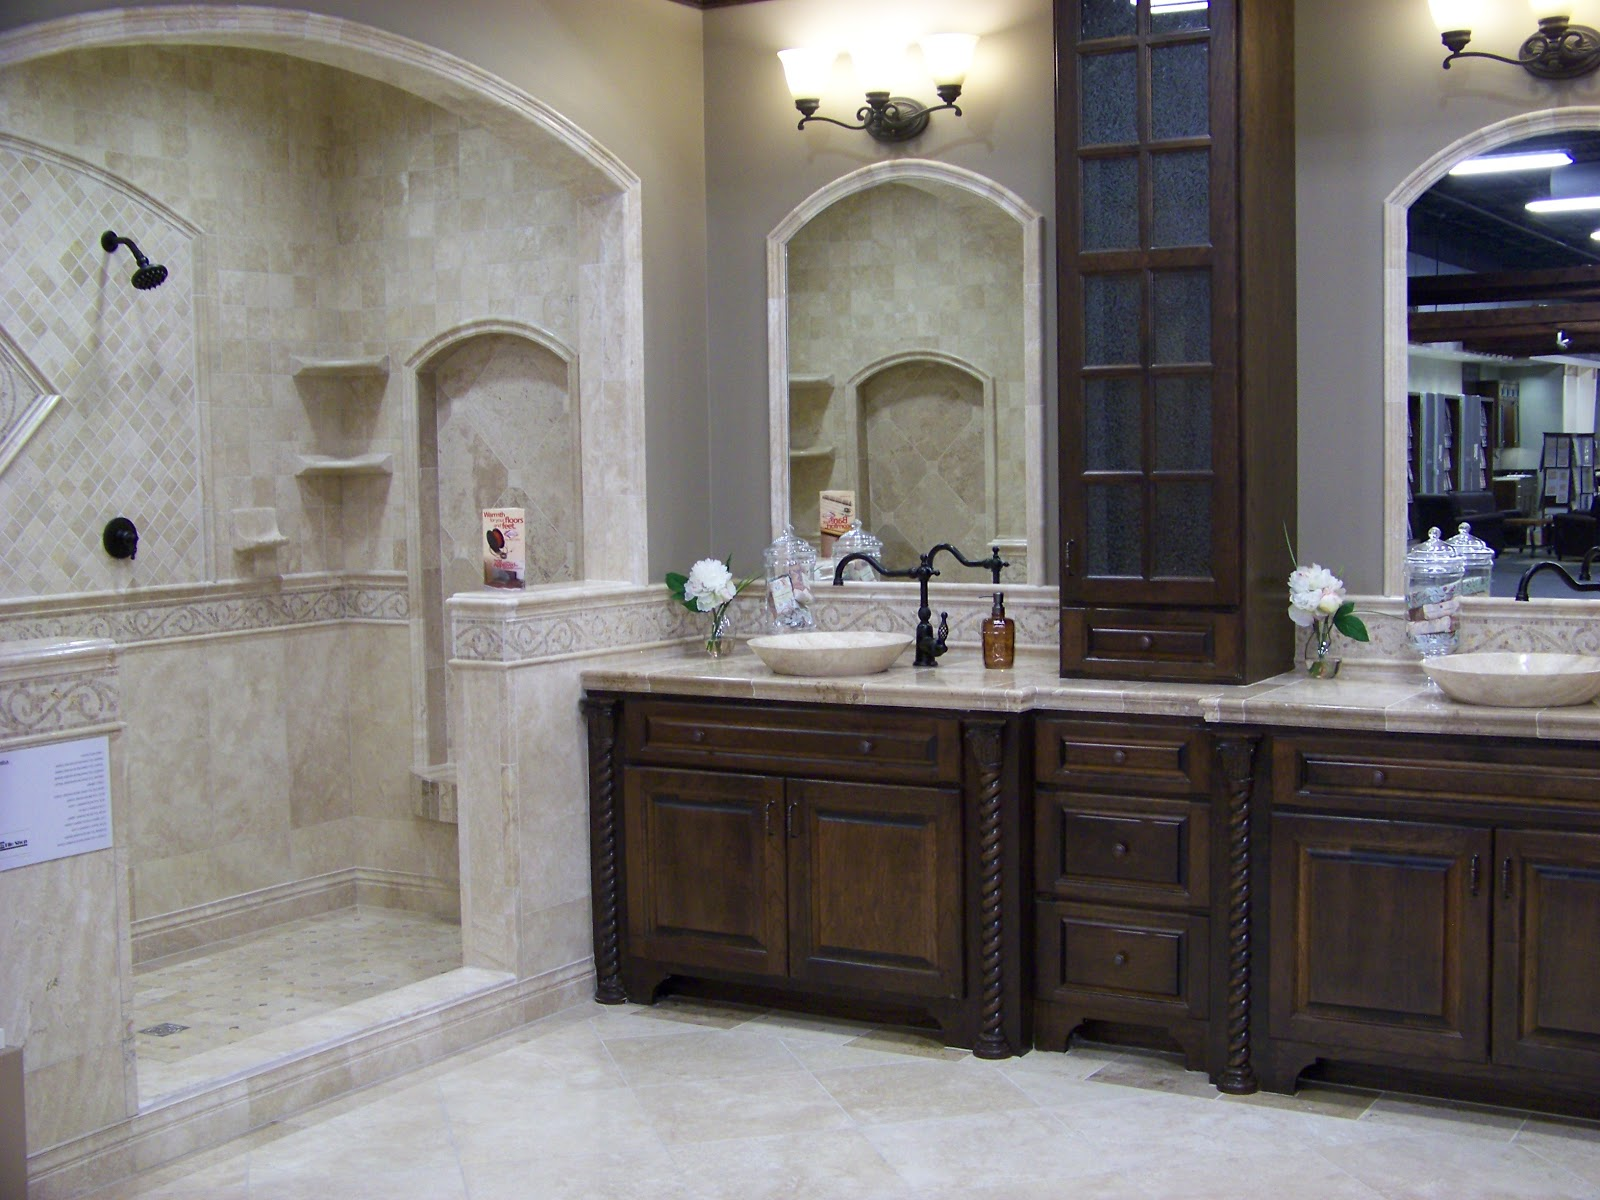 Home decor budgetista bathroom inspiration the tile shop - Master bathroom ...